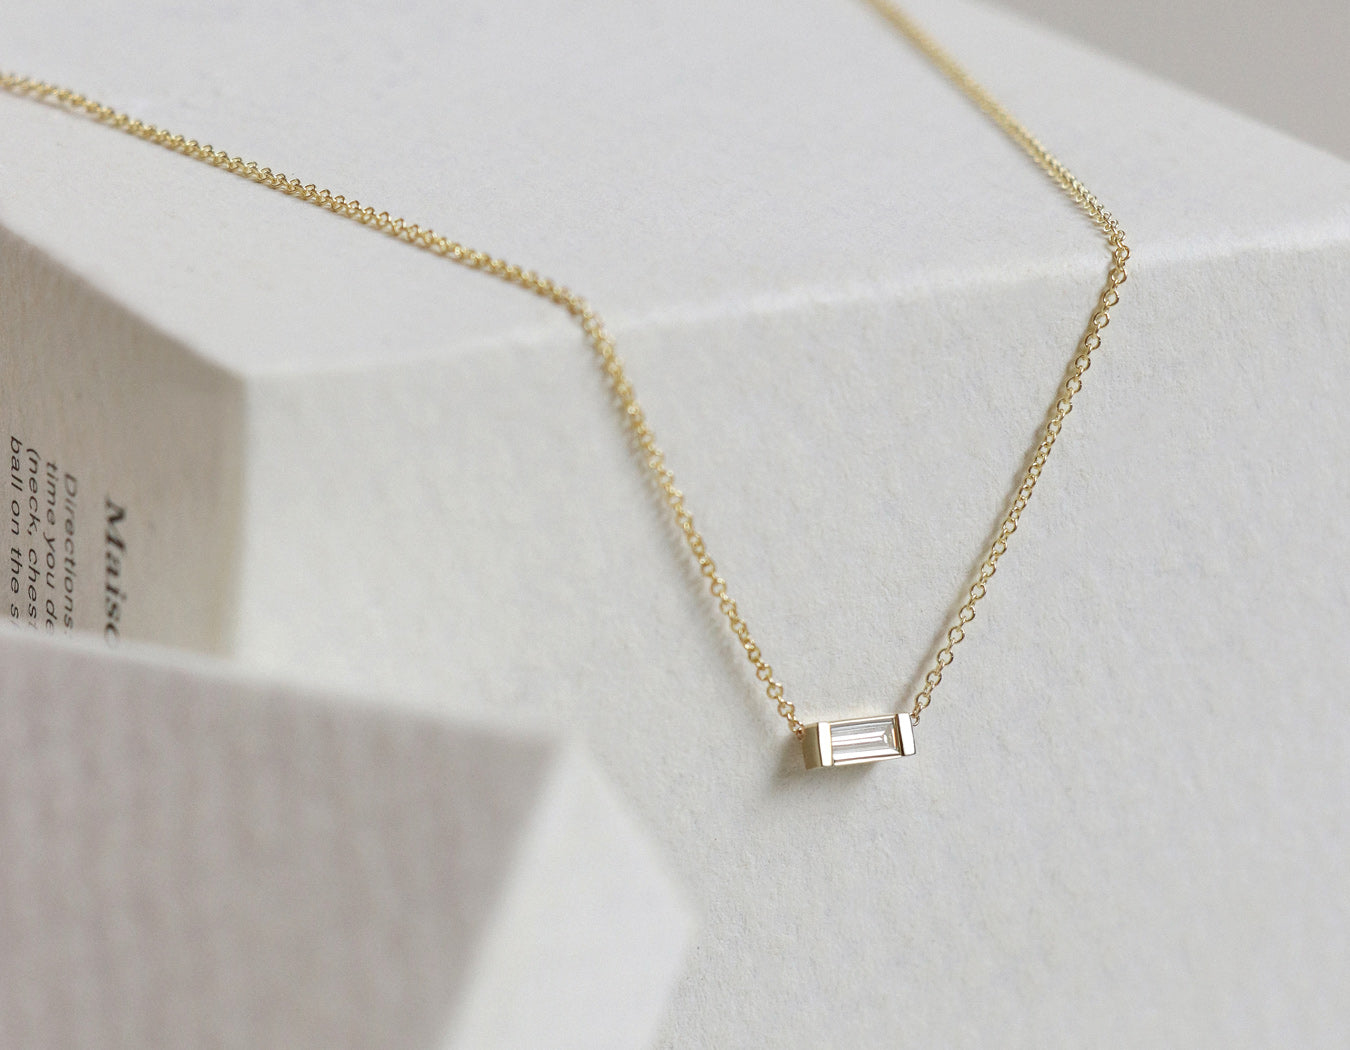 zoom focus of .1 carat Baguette Diamond Necklace in 14k yellow gold by Vrai & Oro hanging off white box